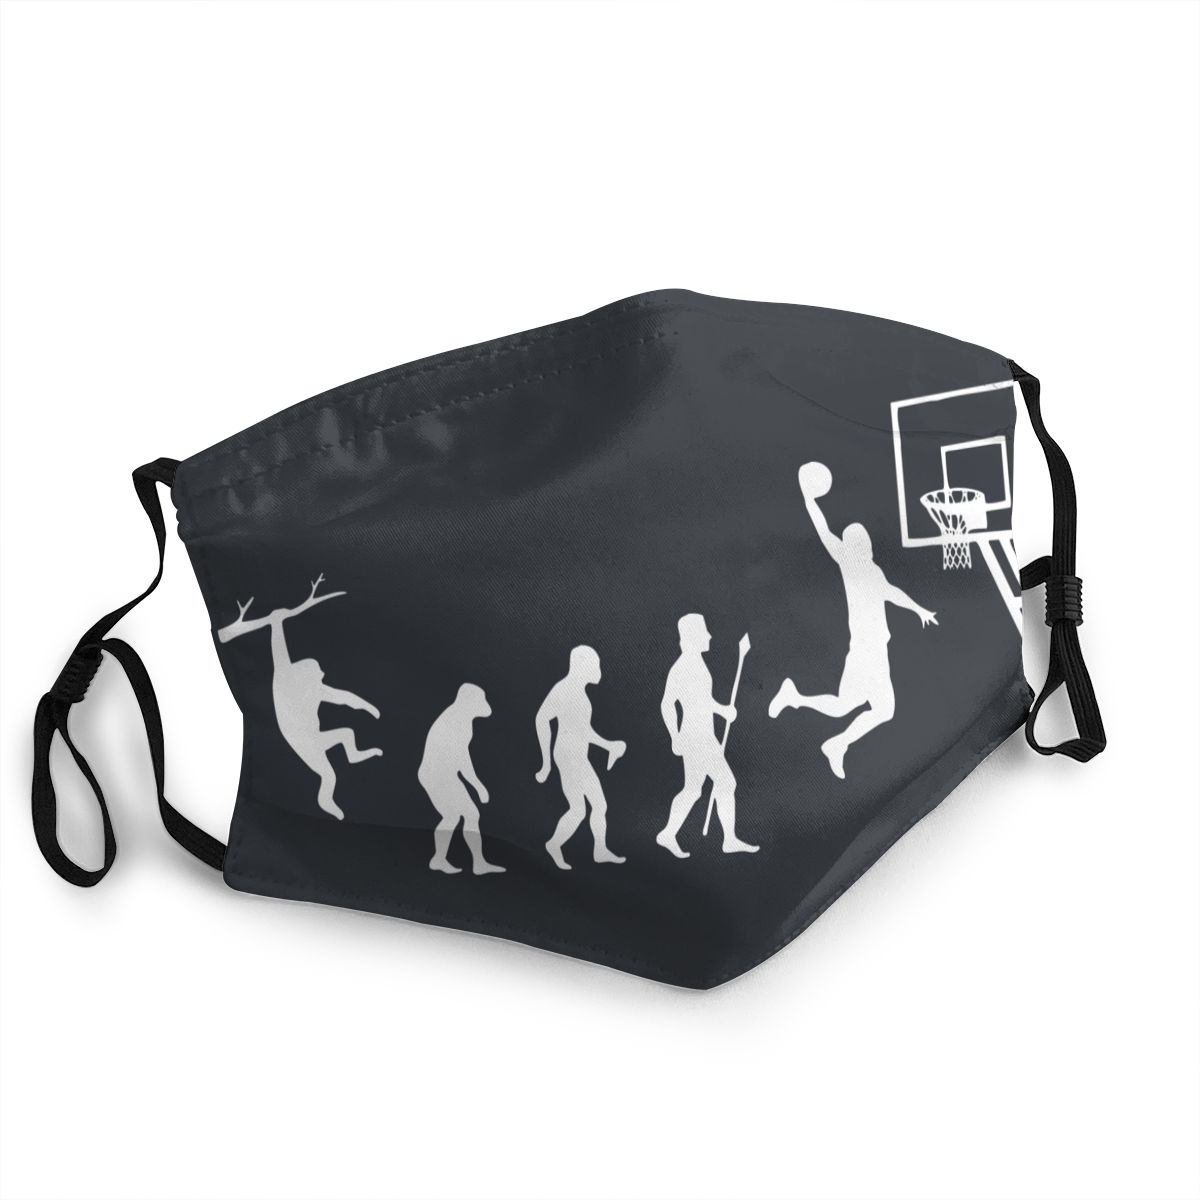 Born To Play Basketball Evolution Reusable Face Mask Printed Anti Bacterial Dustproof Protection Cover Respirator Mouth Muffle